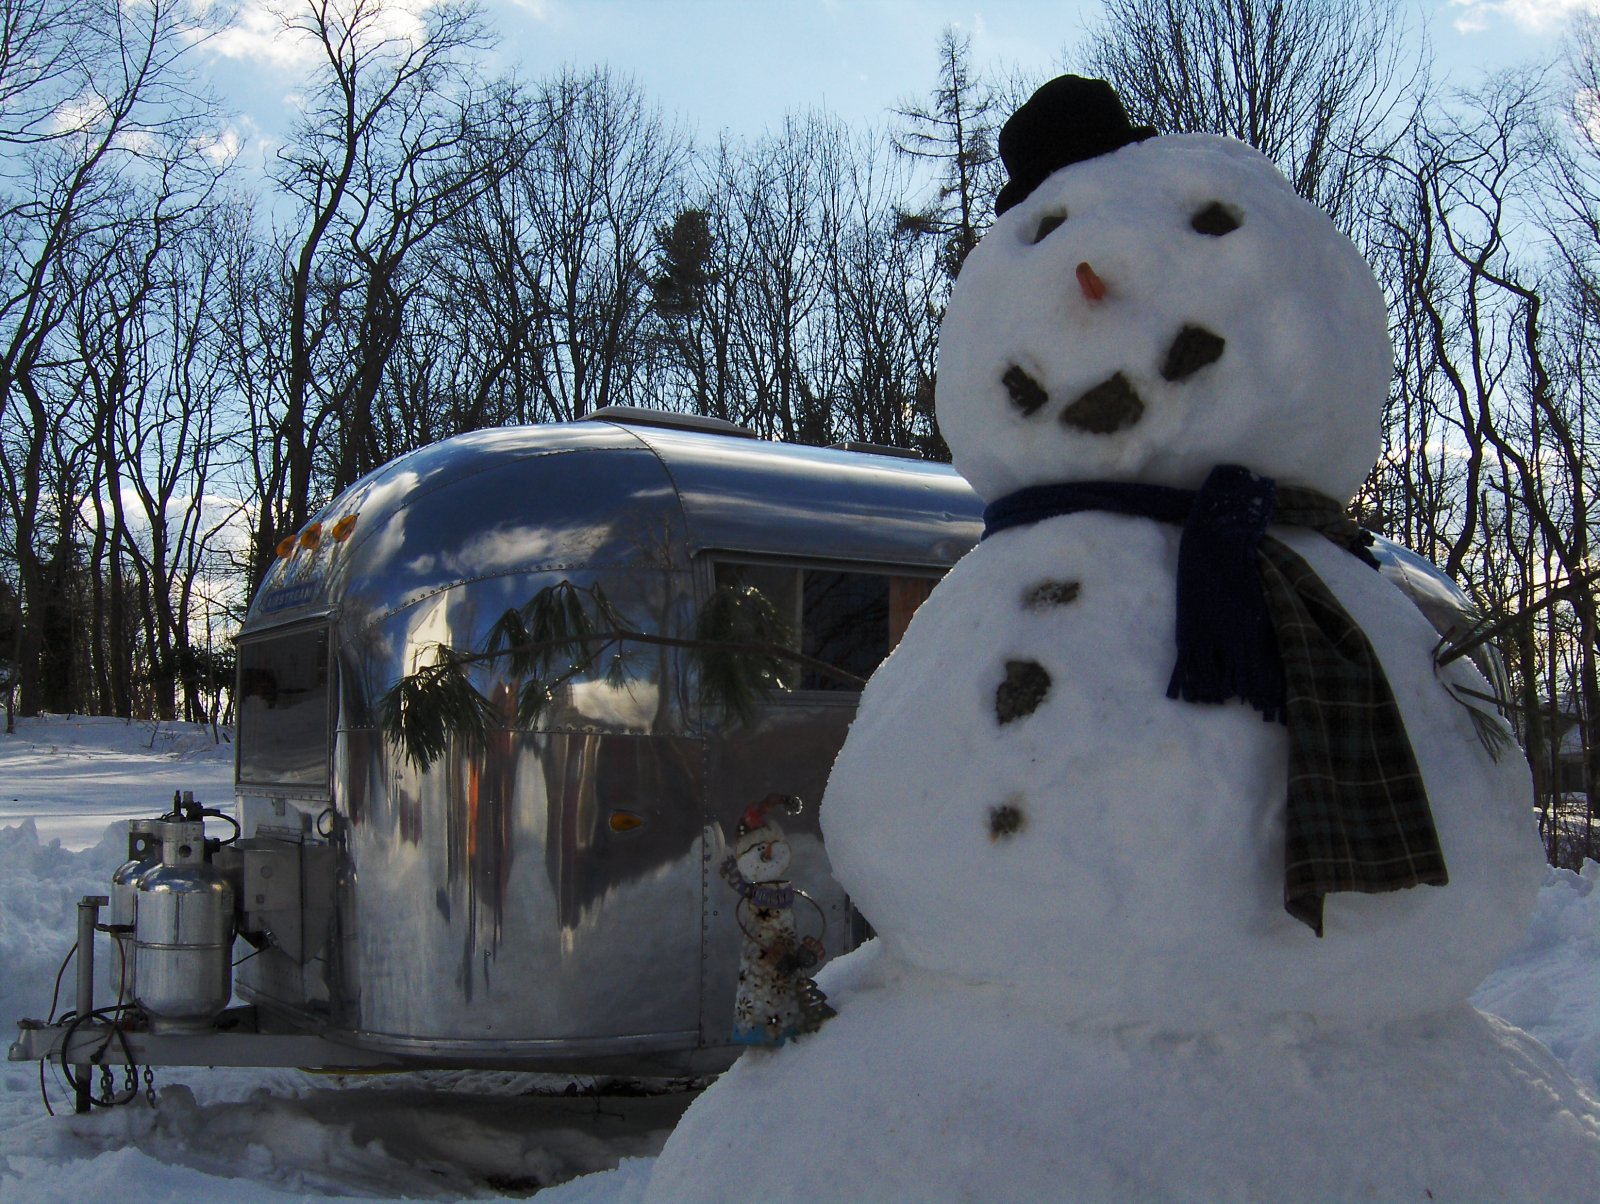 Click image for larger version  Name:snowman 054.jpg Views:143 Size:501.2 KB ID:146646